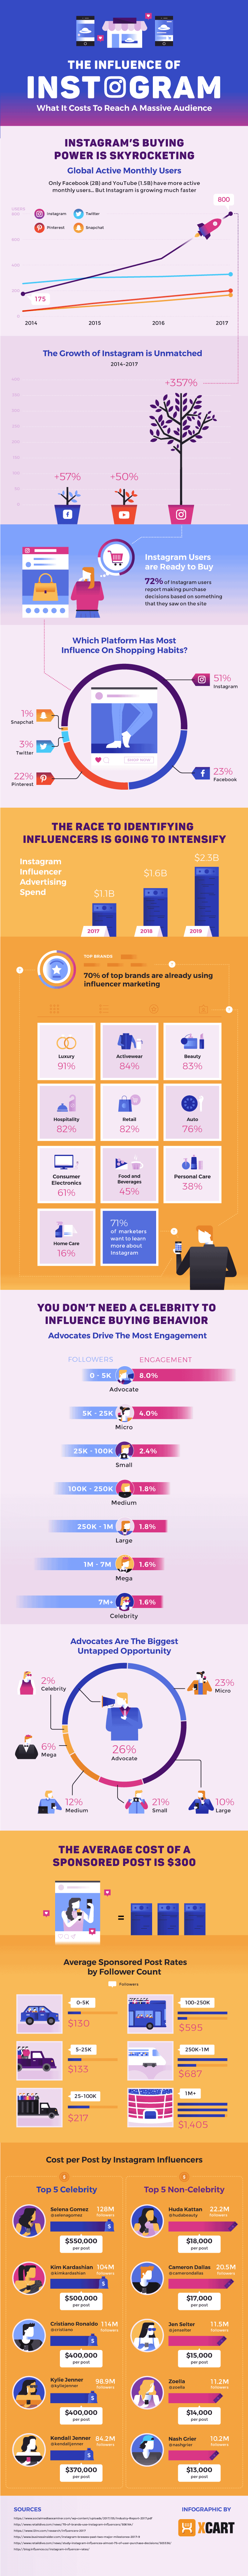 infographic describes why instagram marketing is the future of influencer marketing